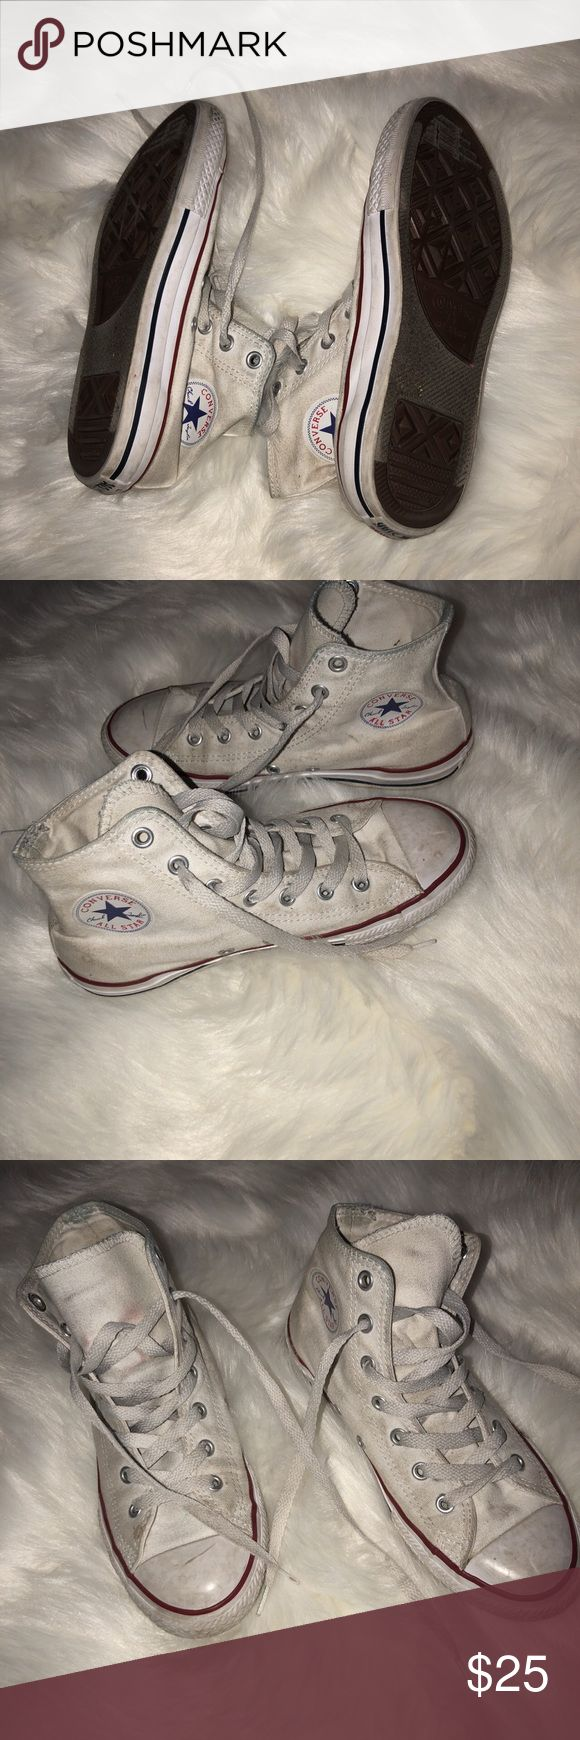 High top white converses for sale Selling my high top white converse, size 4 in kids and 6 in woman. They have wear but are still great. Converse Shoes Sneakers